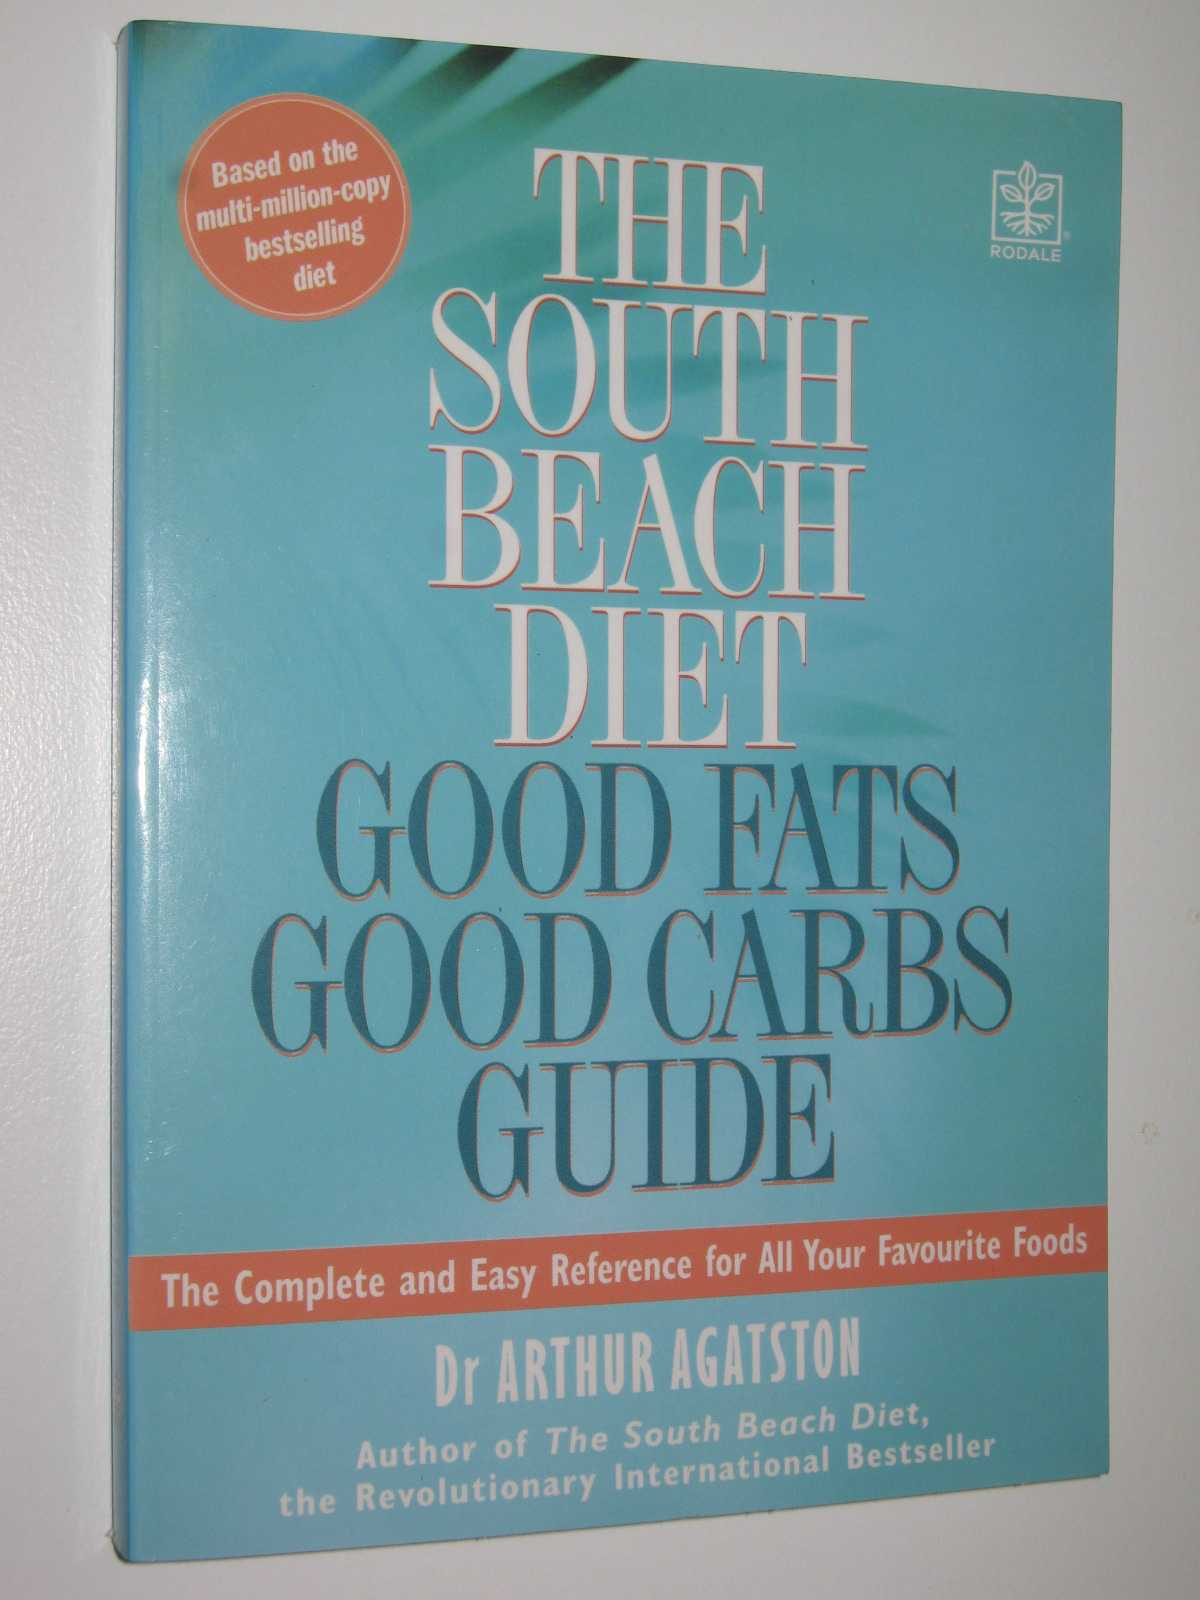 Image for The South Beach Diet : Good Fats, Good Carbs Guide